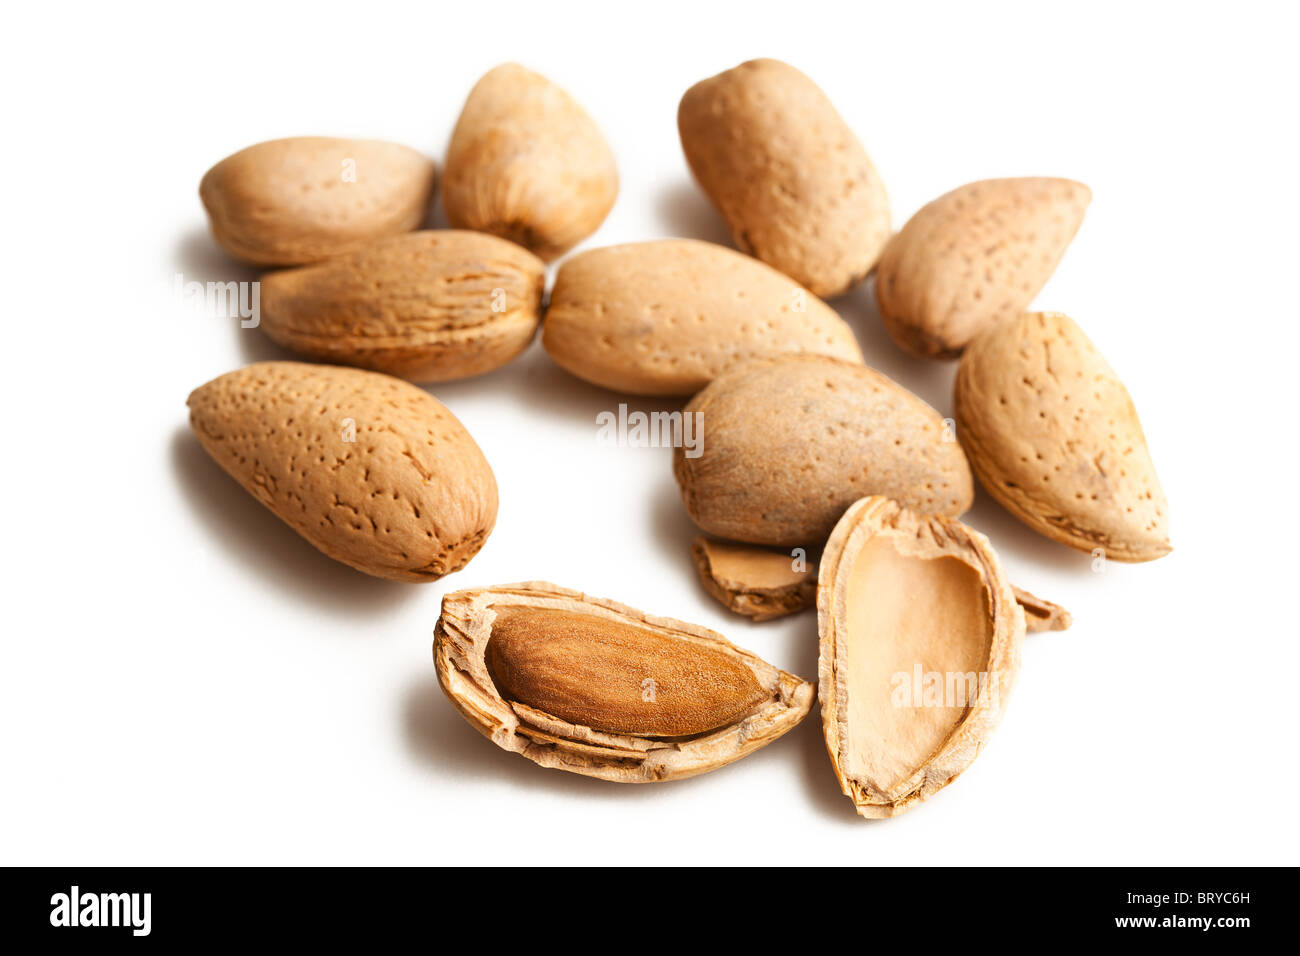 almonds in nutshell - Stock Image